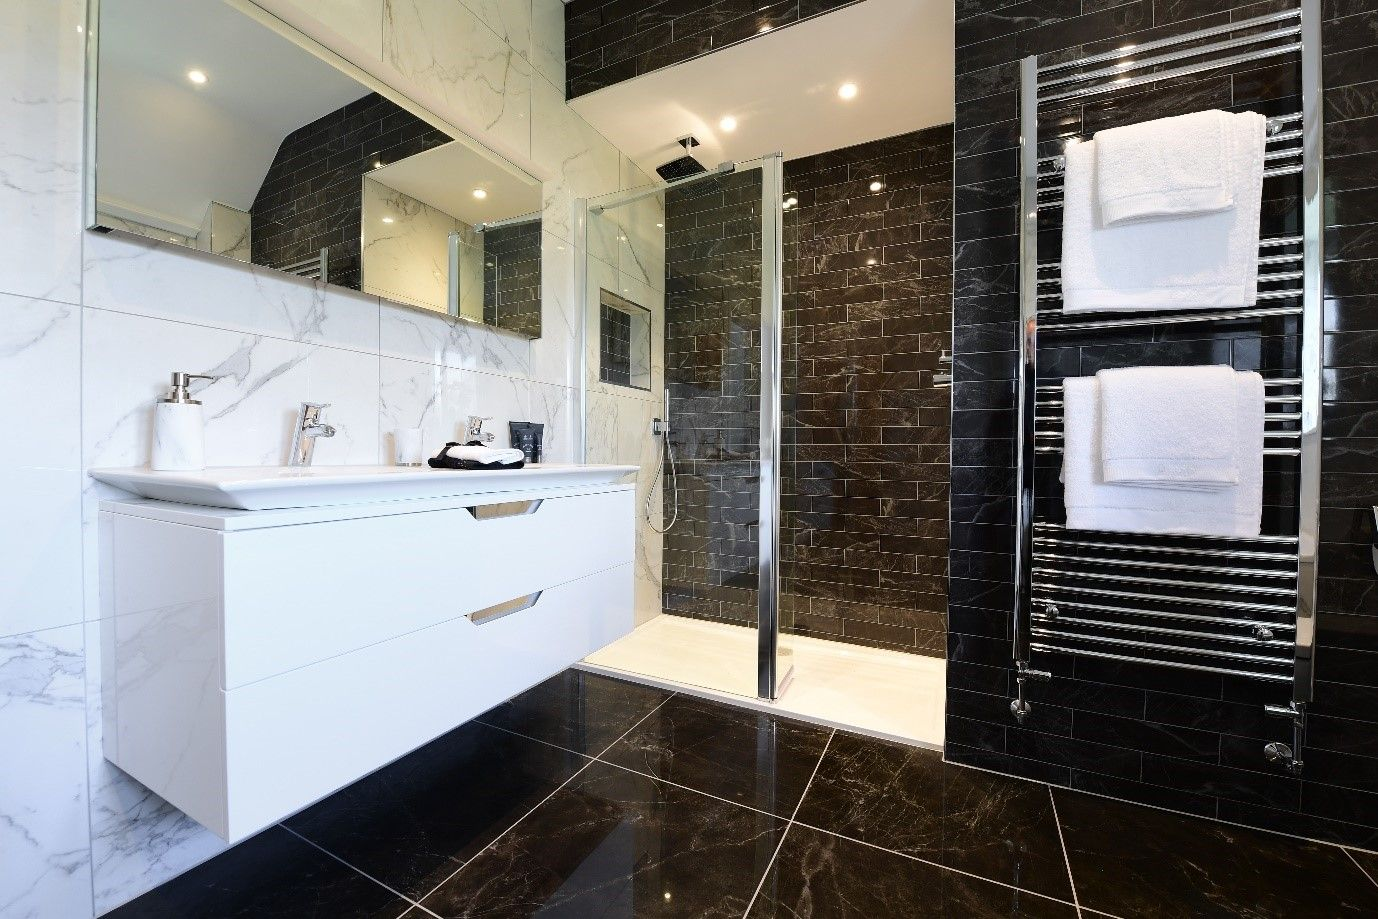 Stunning Marble Inspired Interiors Are Achieved Through The Minoli Marvel Porcelain Tiles Find Lux Black Marble Bathroom Luxury Hotels Interior Marble Effect